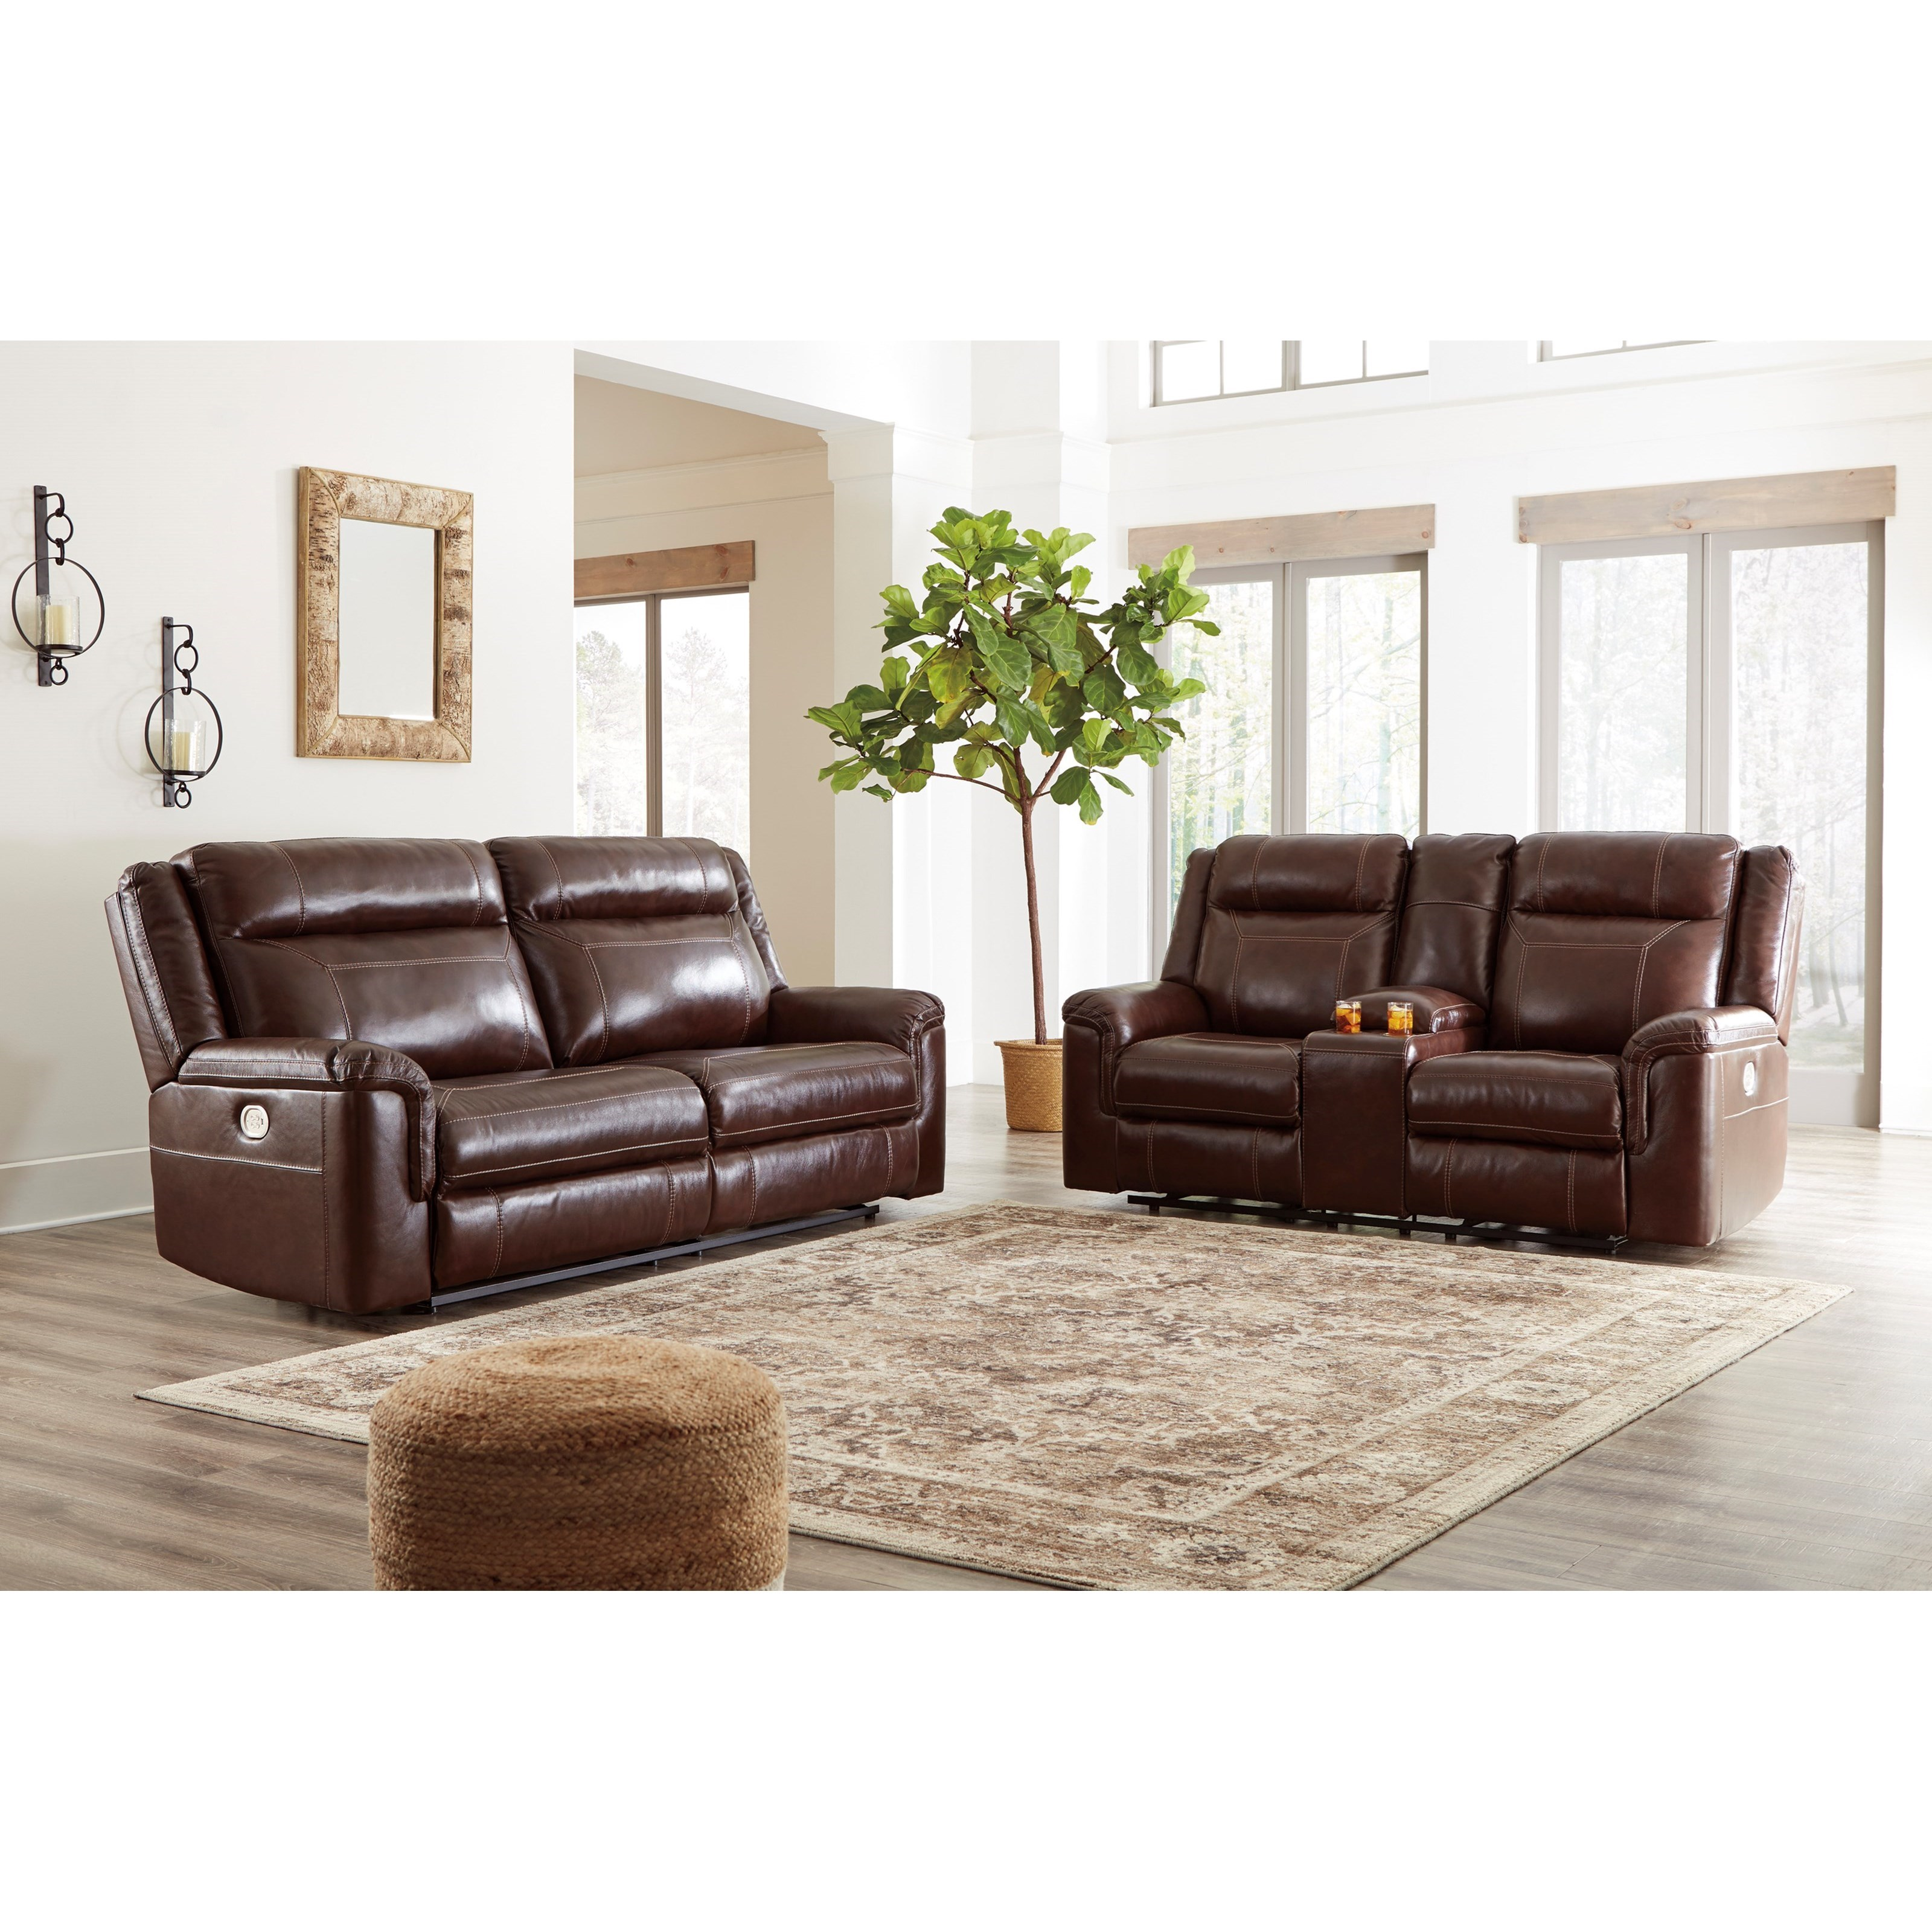 Signature Design By Ashley Wyline Power Reclining Living